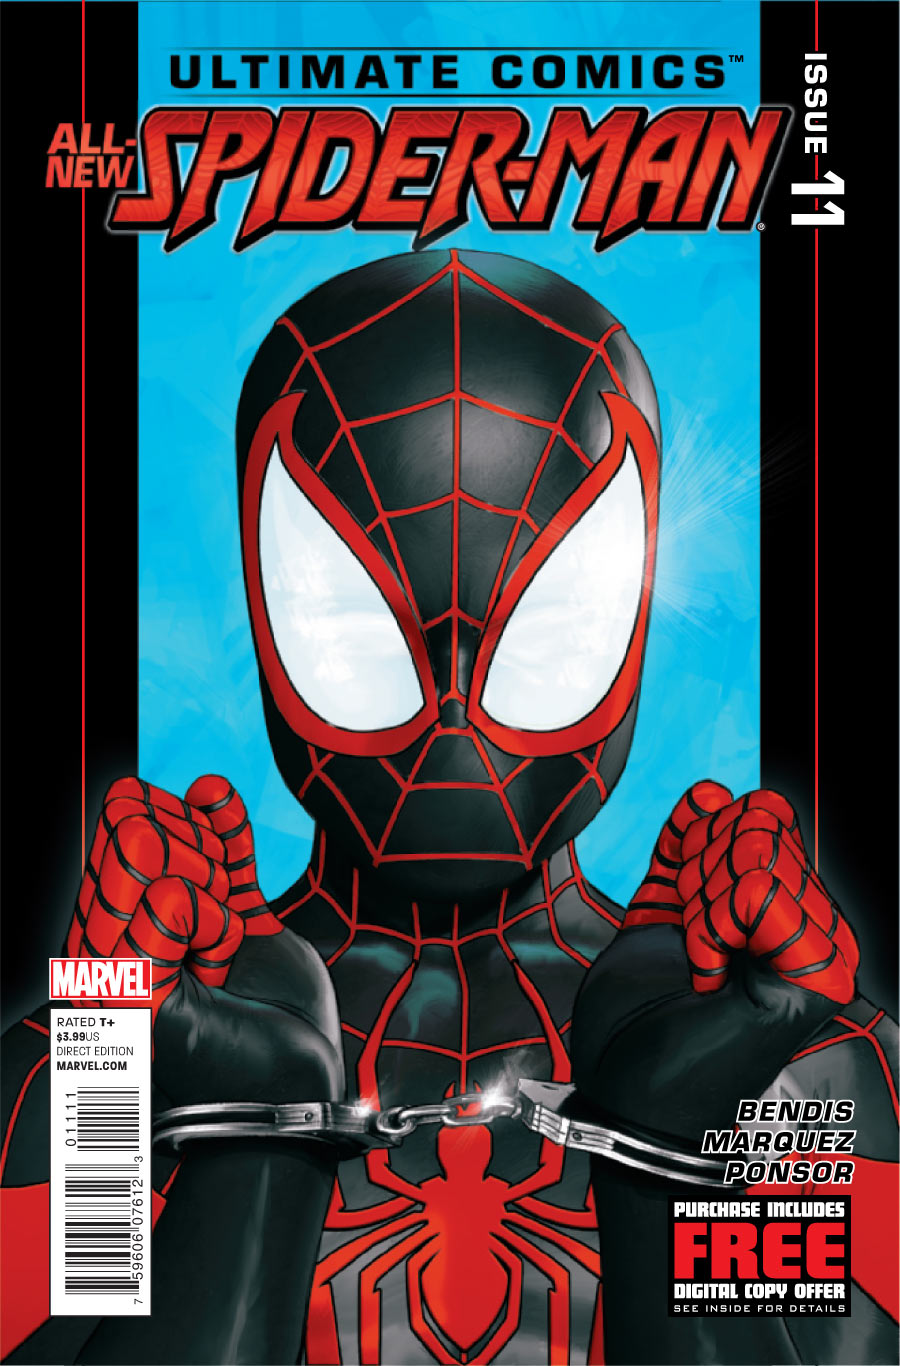 Ultimate spider man comic - photo#8